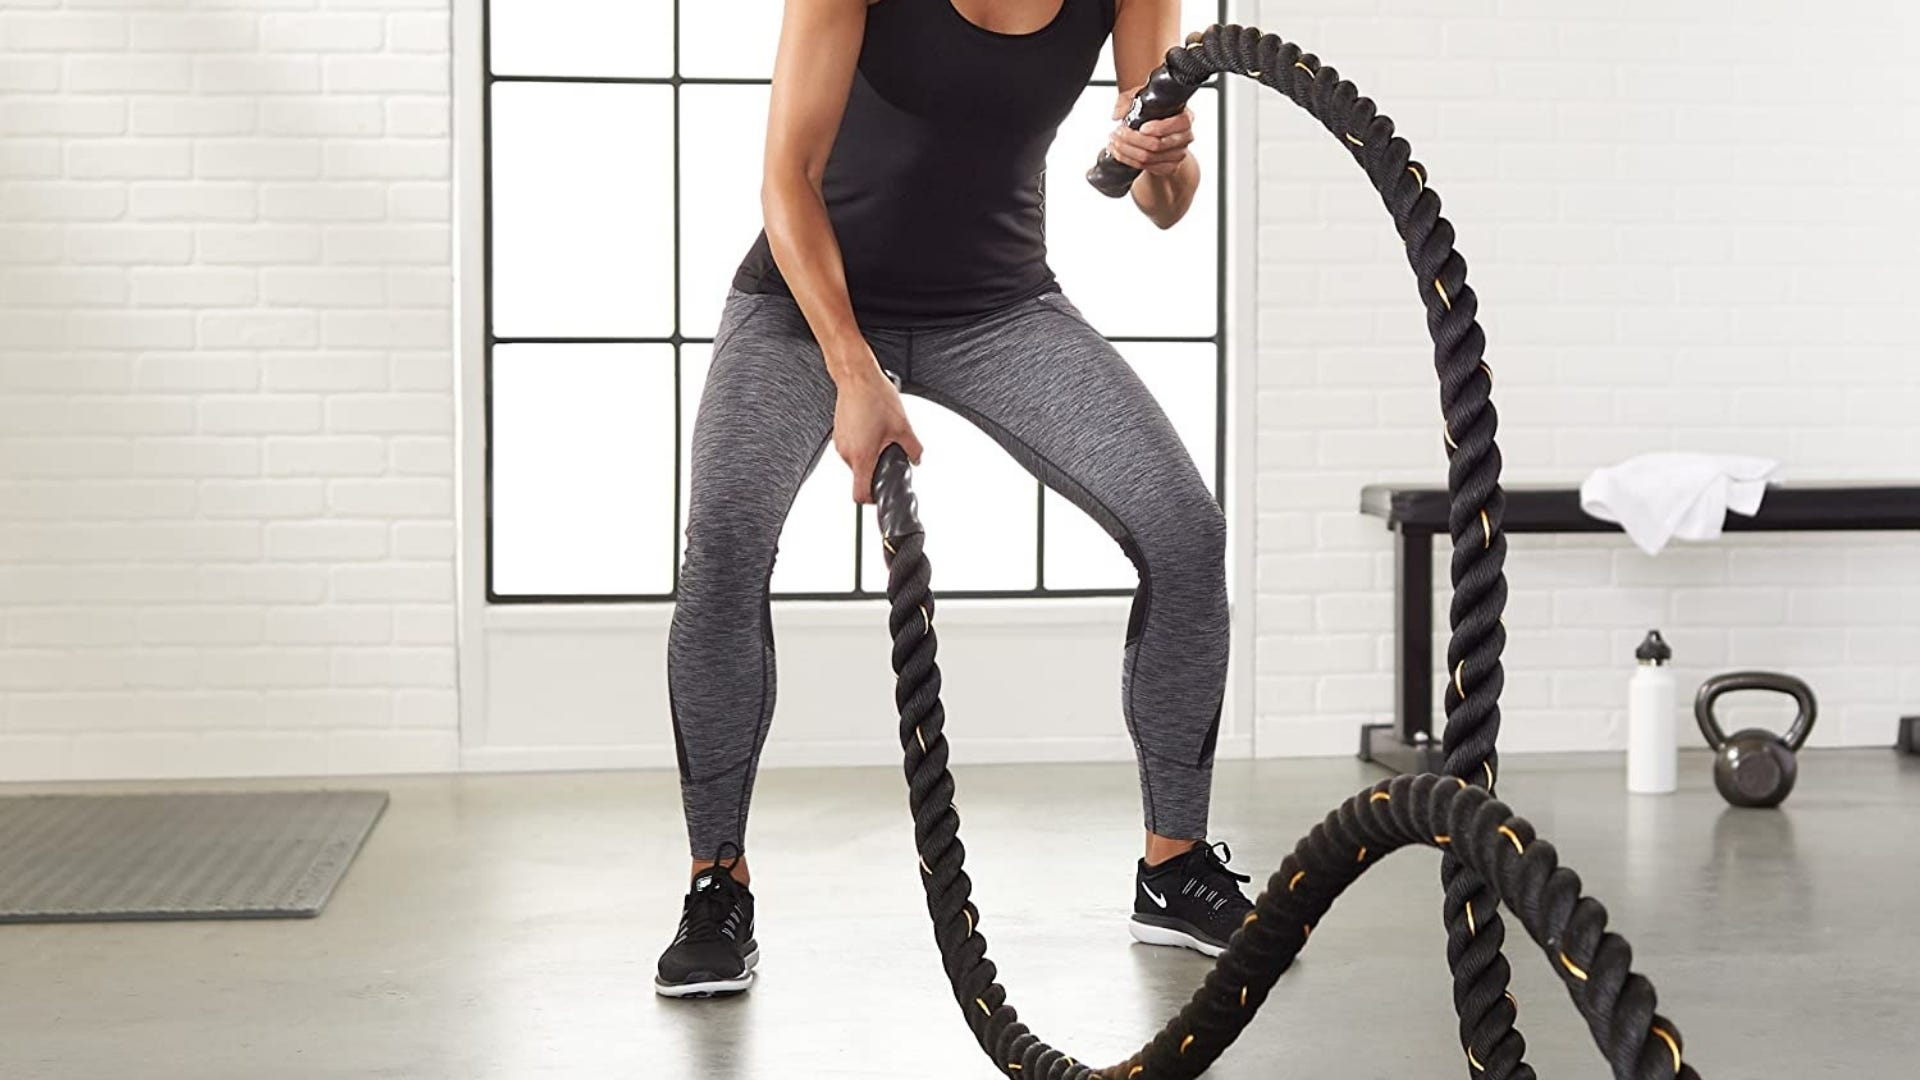 Woman is using battle ropes inside a gym.